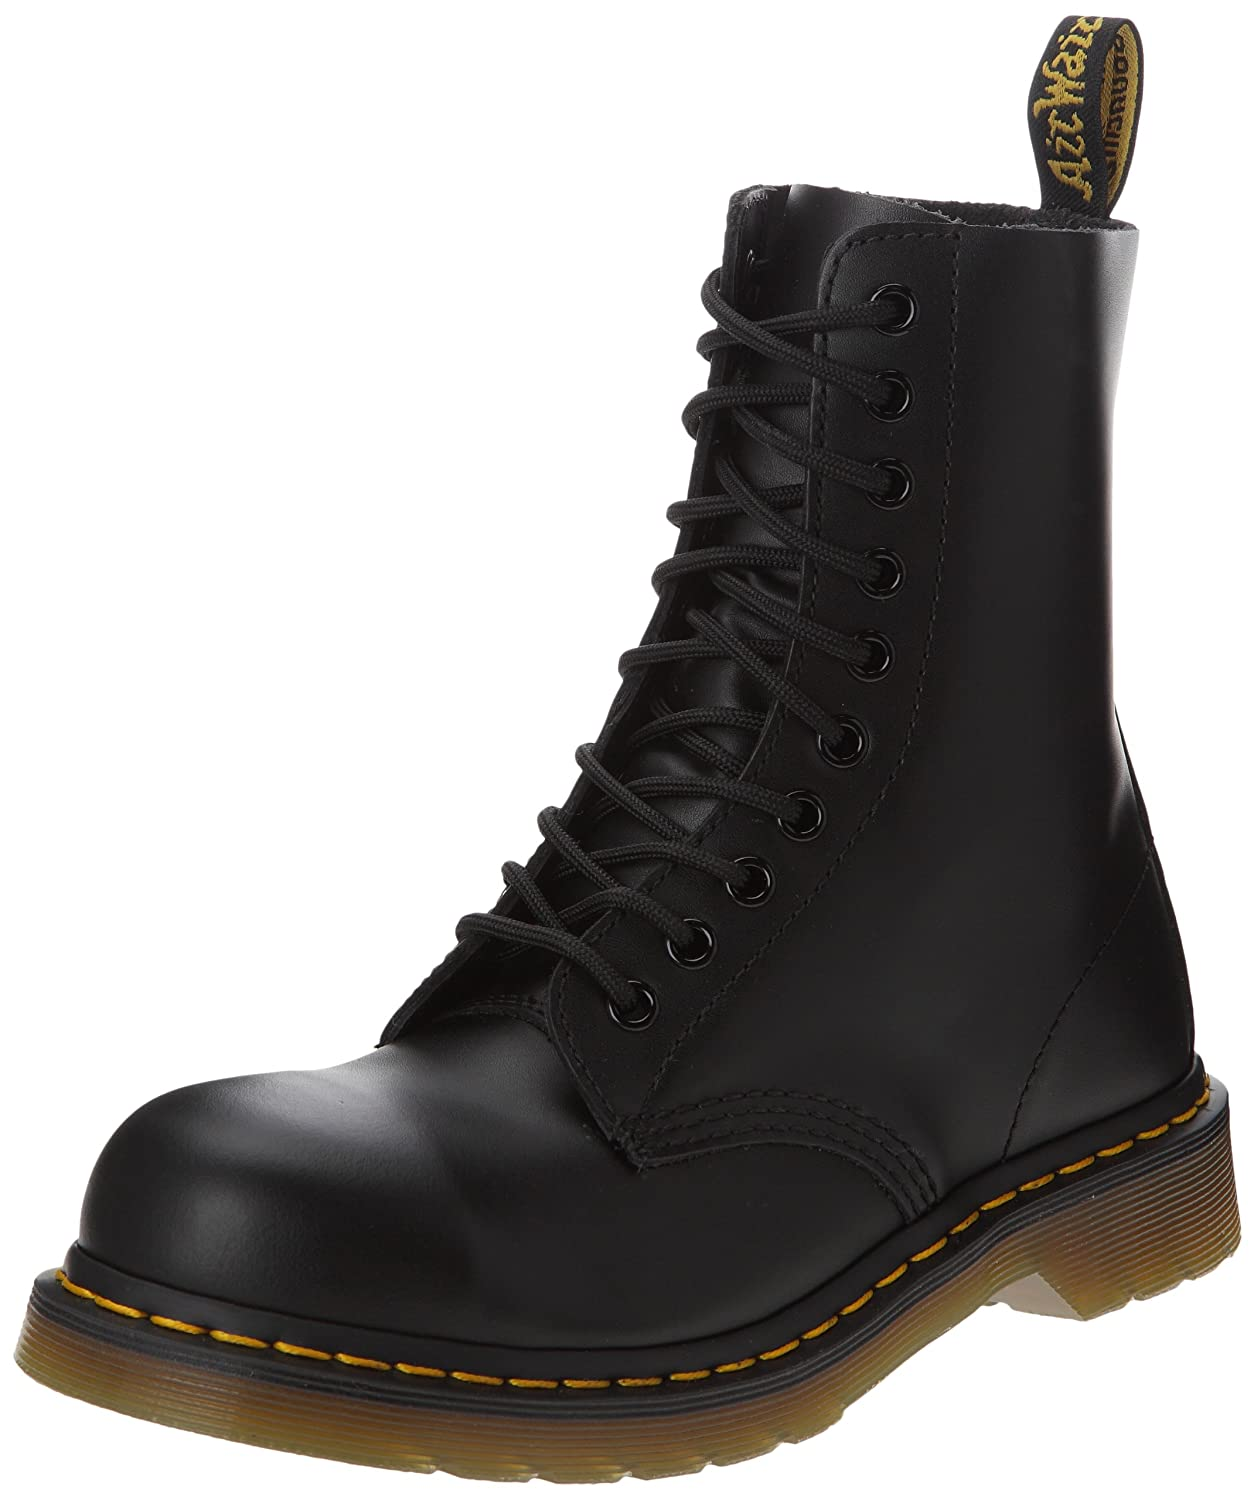 factory outlets best quality best choice Unisex 1919 Martens Dr. Erwachsene 10105001, Stiefel ...